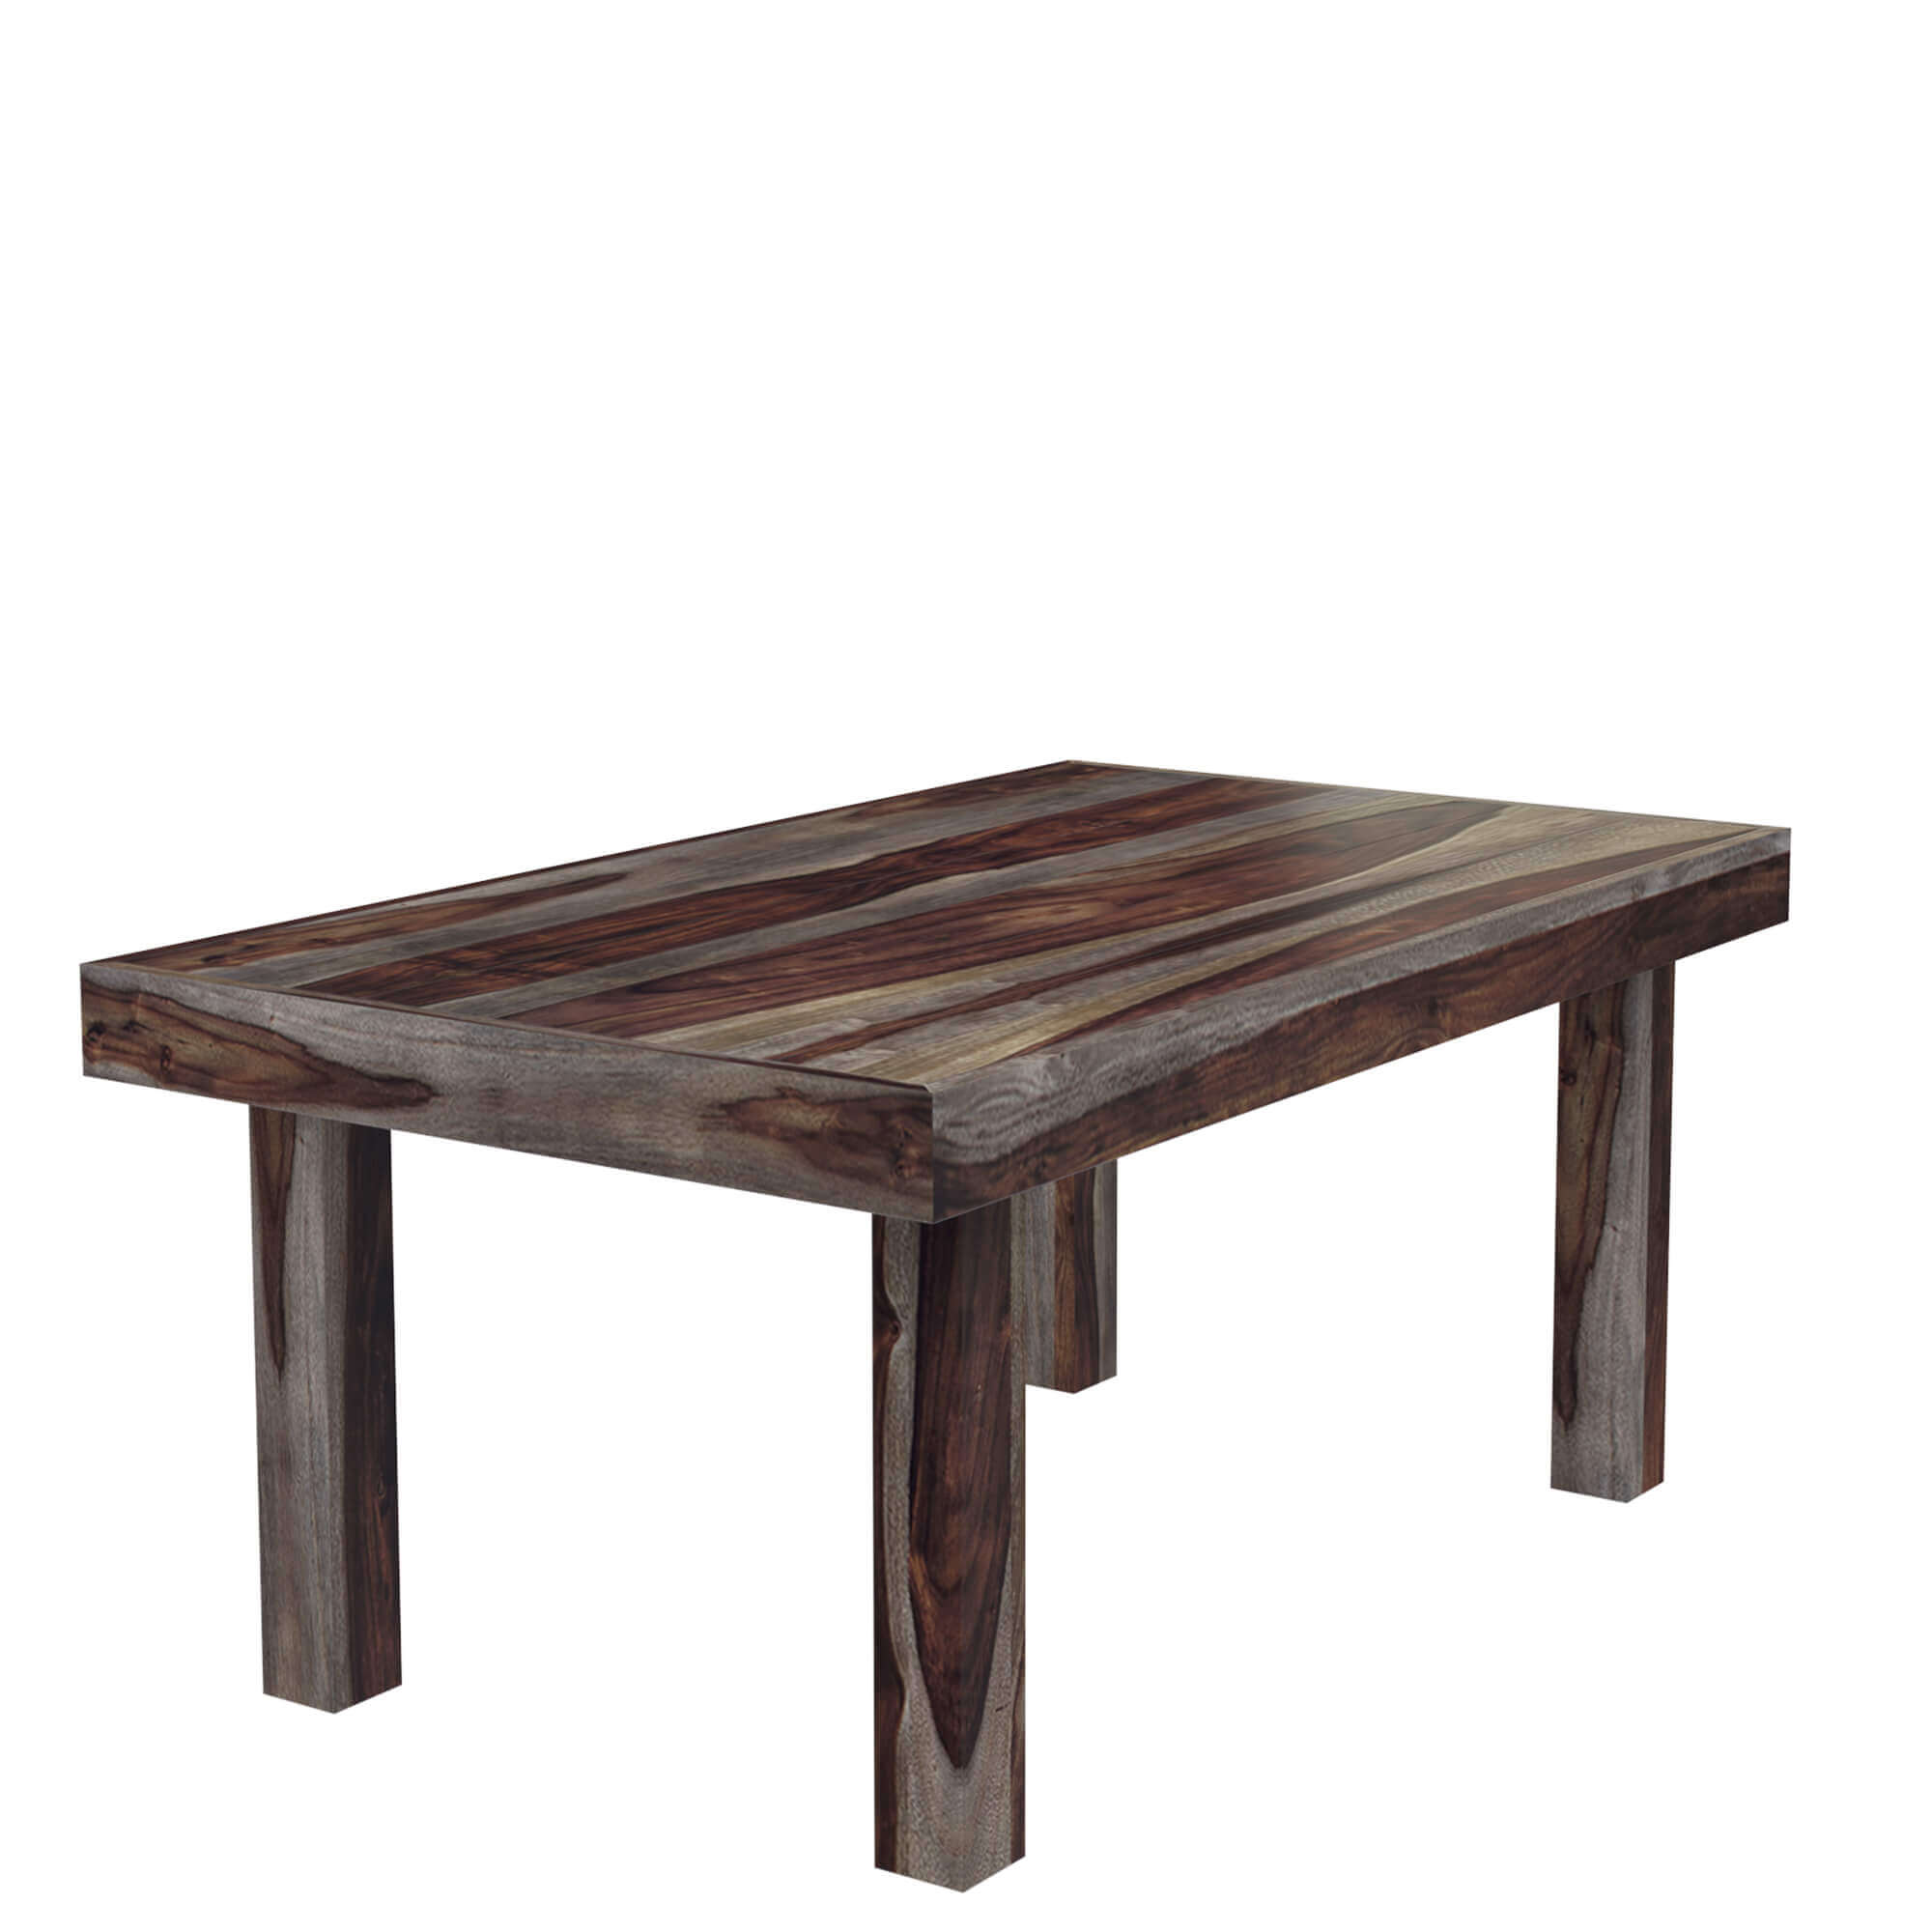 Frisco modern solid wood rectangular rustic dining room table for Dining room table for 6